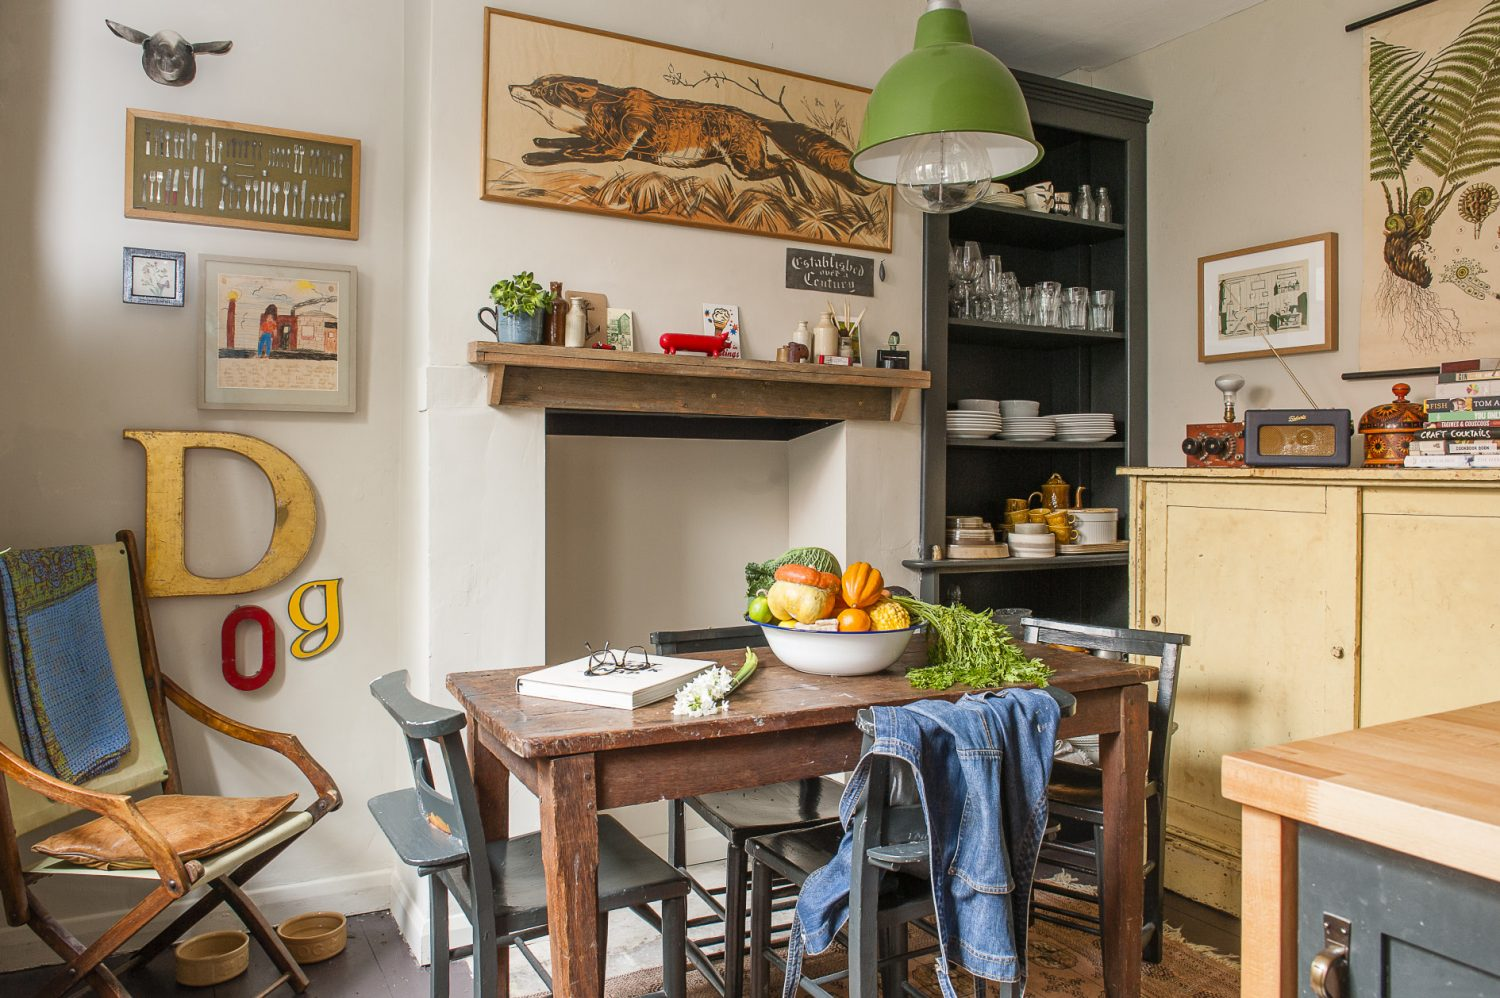 David and James used local carpenter Sam White to rebuild the kitchen. Stewart Walton, a craftsman who creates things out of Hastings Old Pier wood was commissioned to make the mantelpiece and shelving. David found the fox painting over the fireplace in a junk shop in Prague